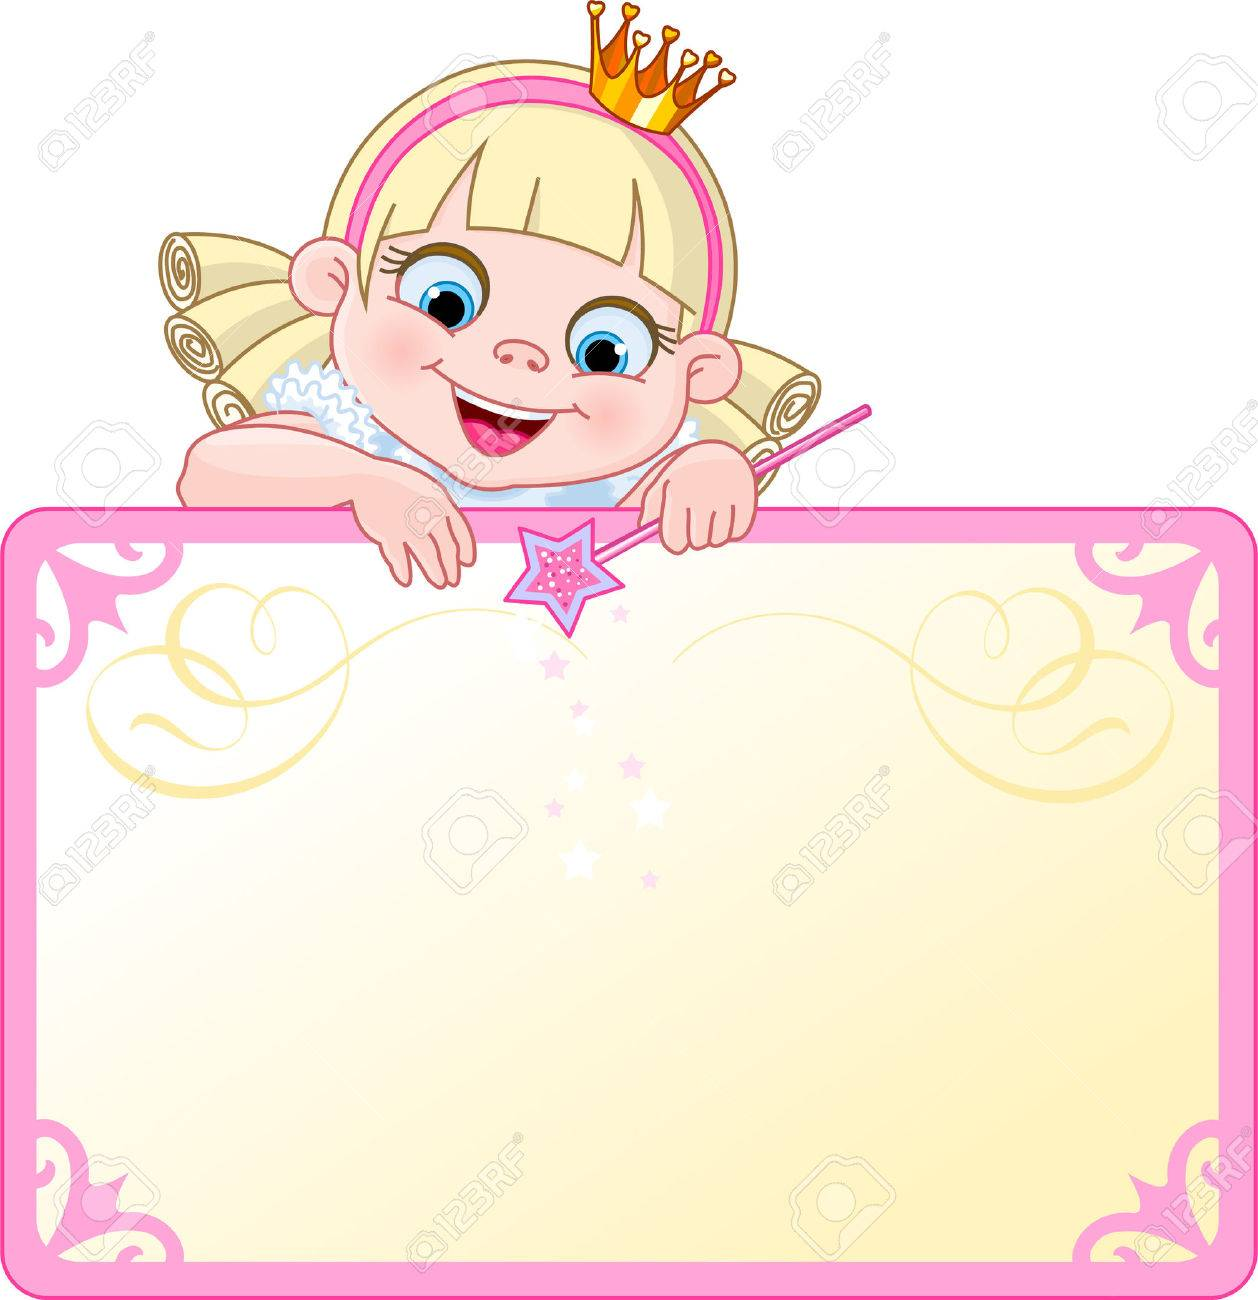 Cute  Princess character on a place card or invite. Ideal for little girls parties and promotions. Stock Vector - 5545094